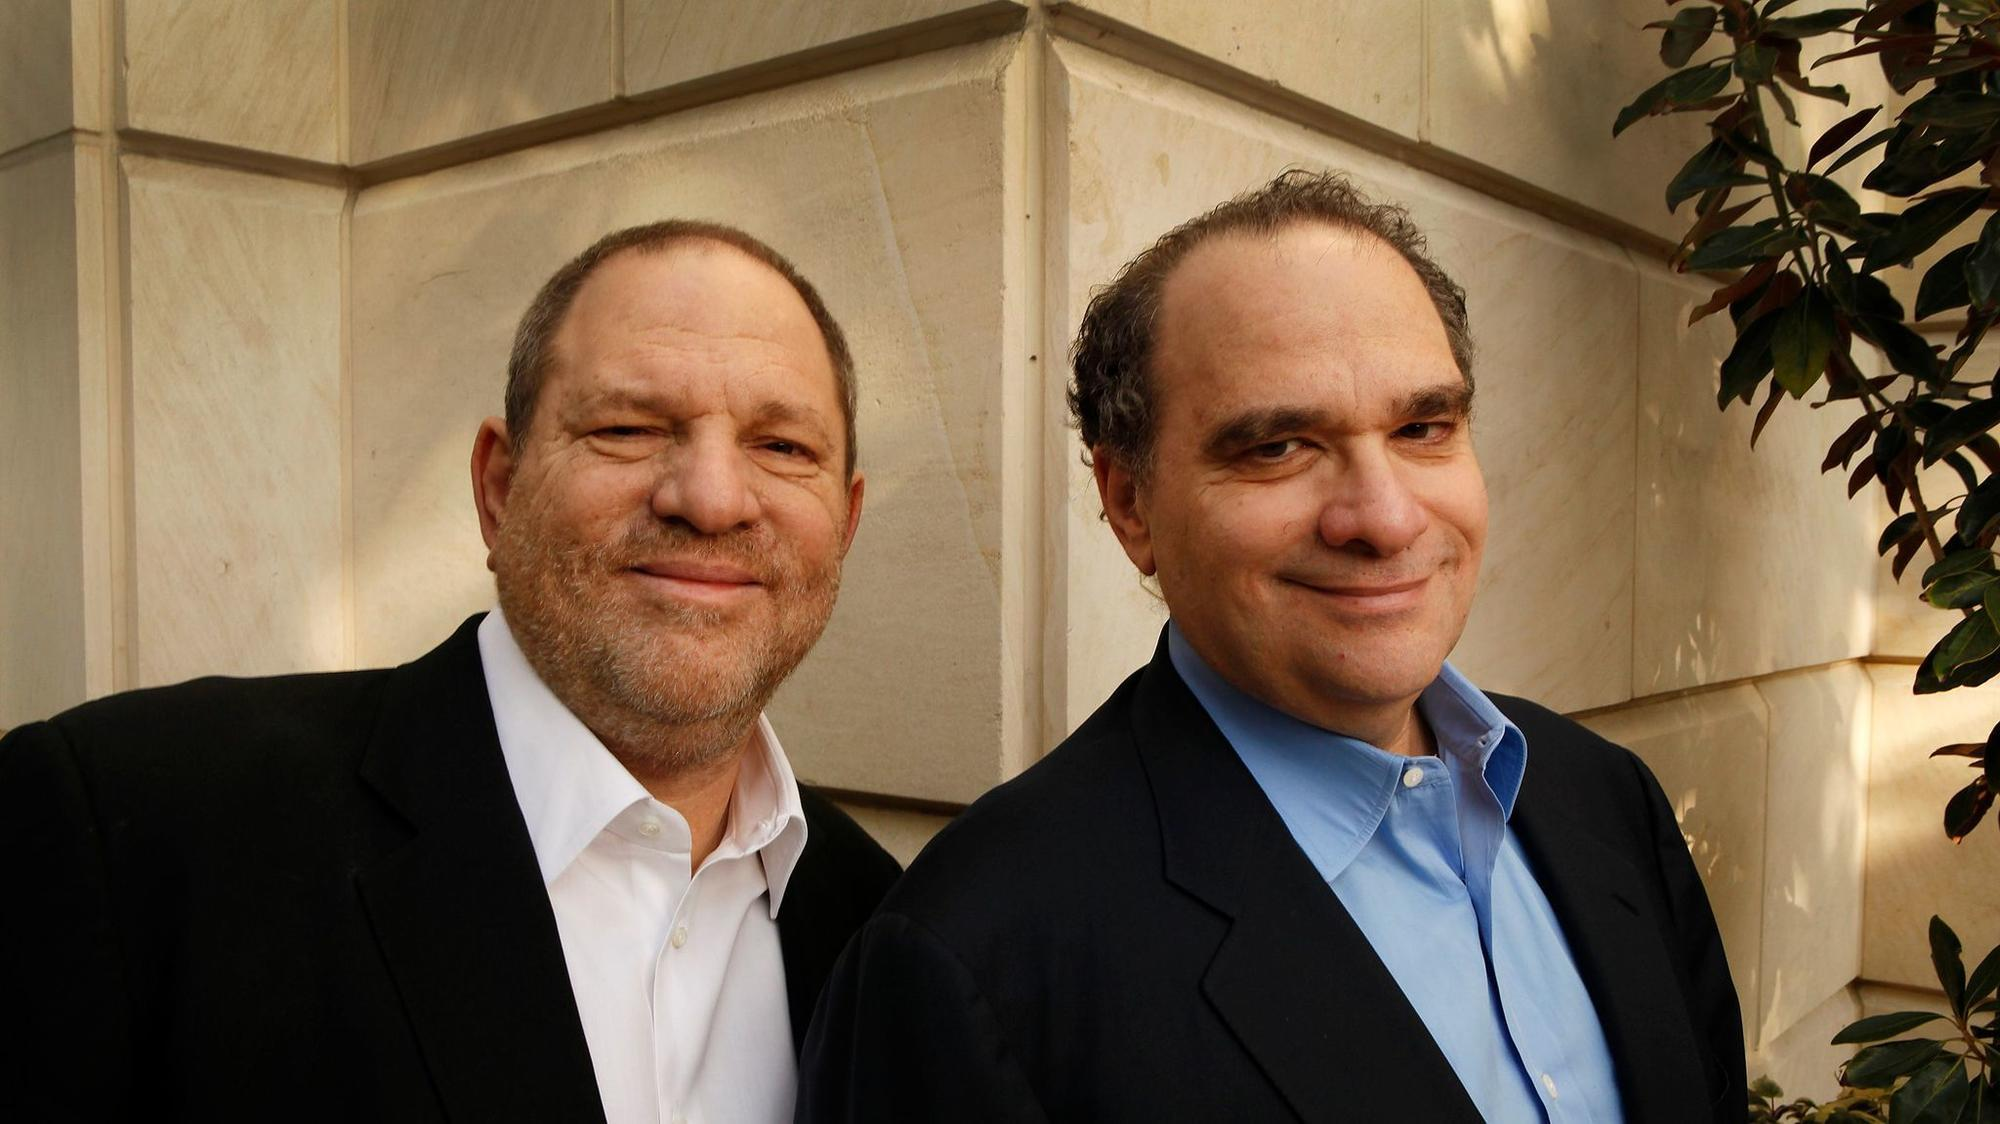 Harvey weinstein brother